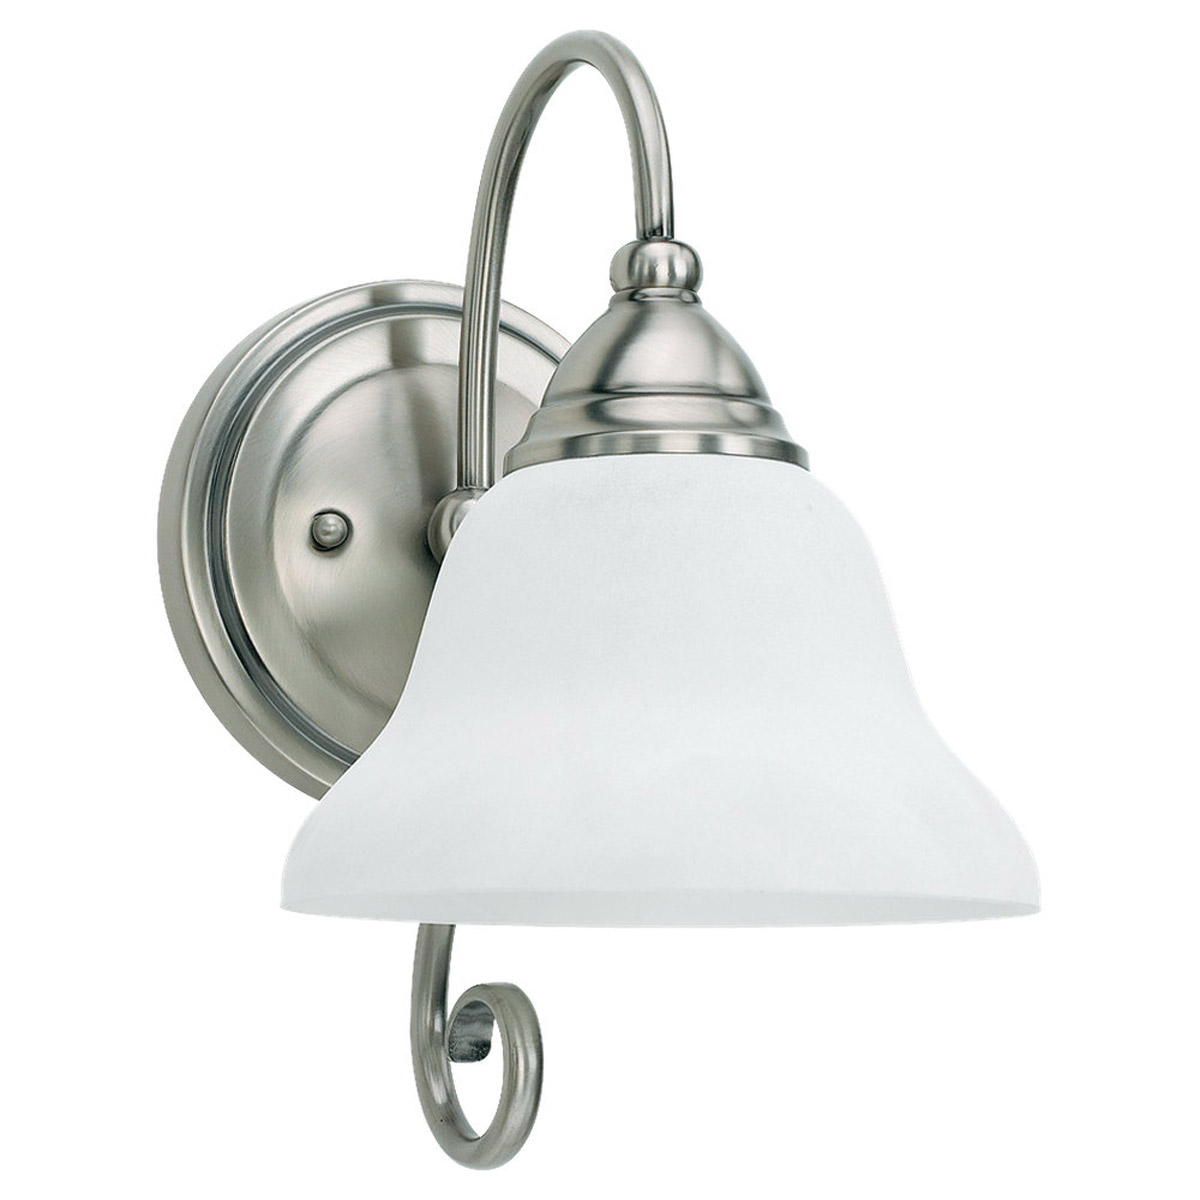 Sea Gull Lighting Montclaire 1 Light Bath Vanity in Antique Brushed Nickel 41105BLE-965 photo